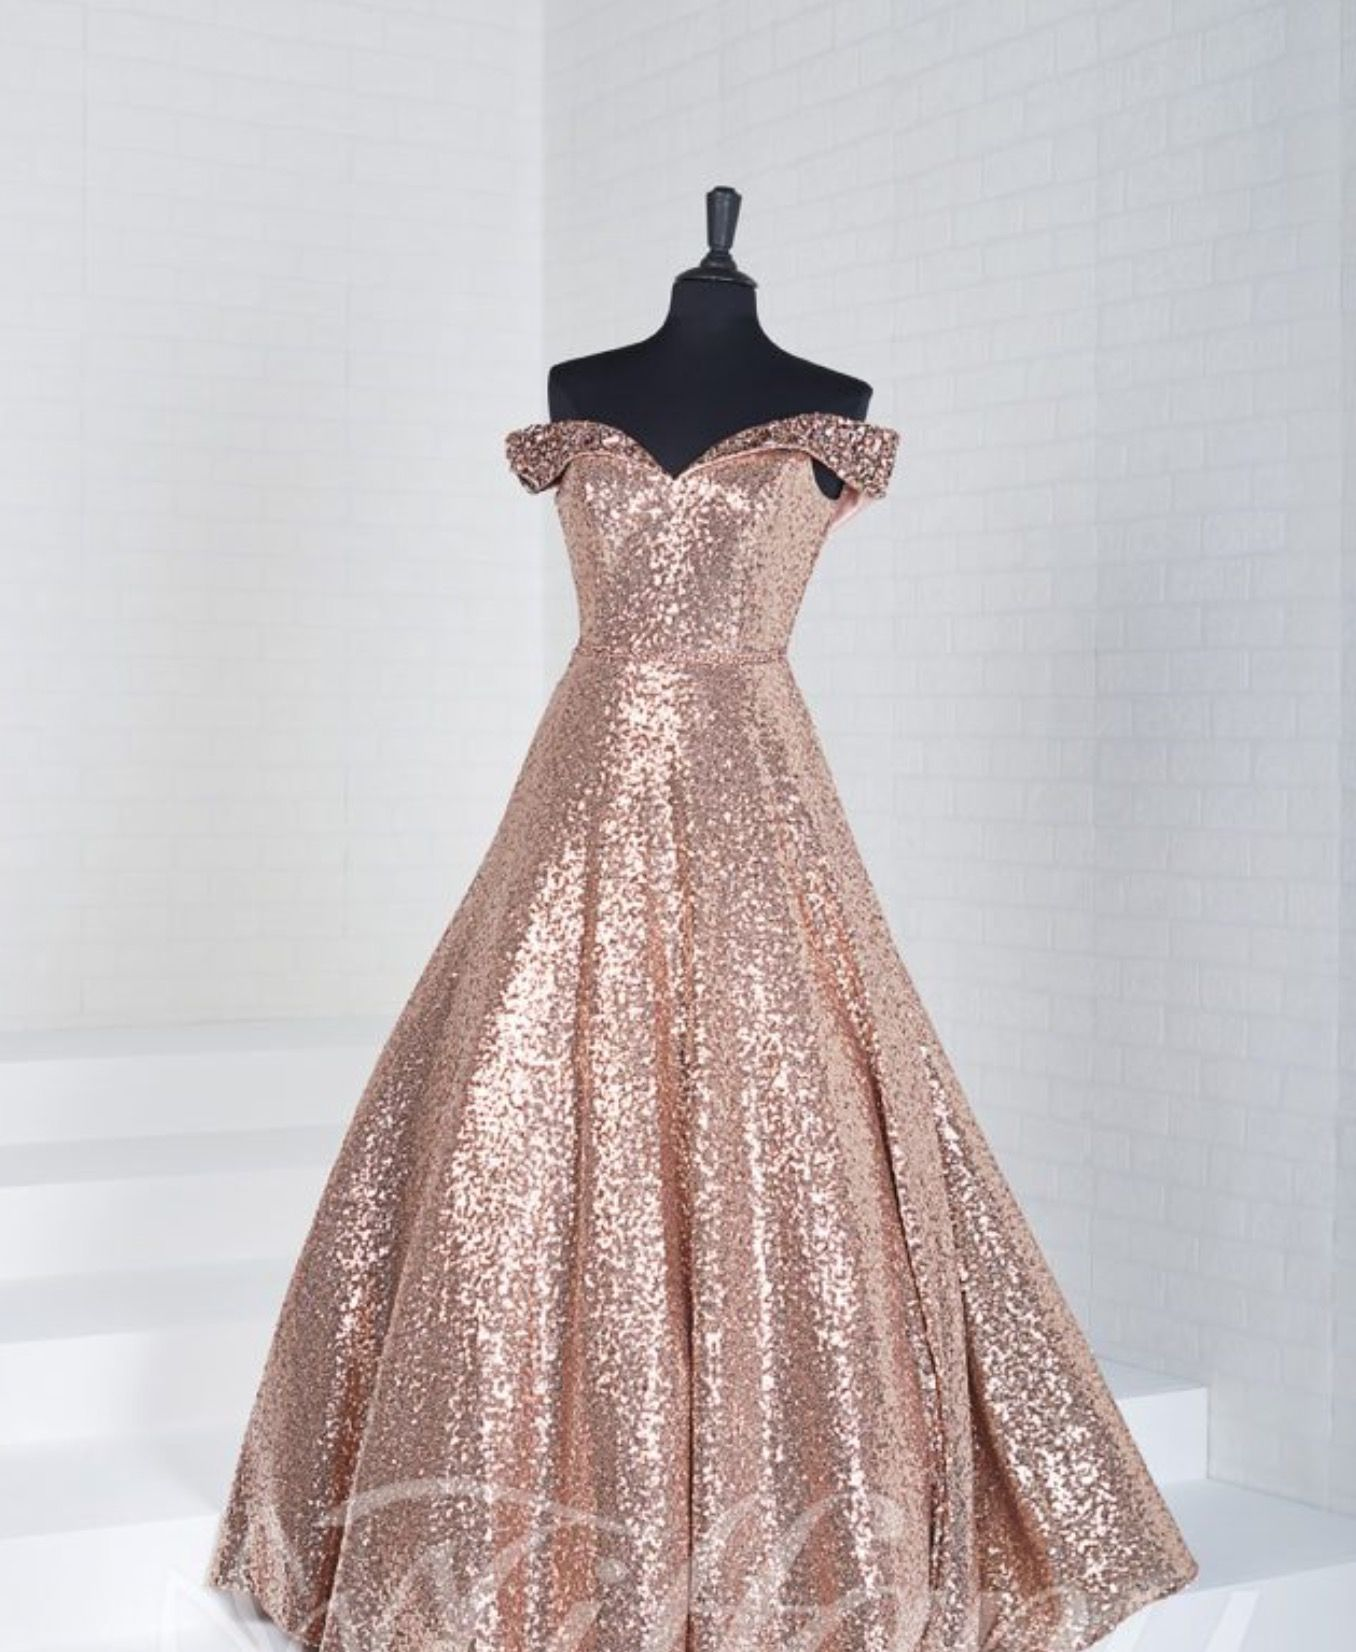 Hospitable Short Evening Dress 2018 New Appliques Beaded Wedding Party Dress V-neck Prom Dresses With Sashes Custom Size Robe De Soire Evening Dresses